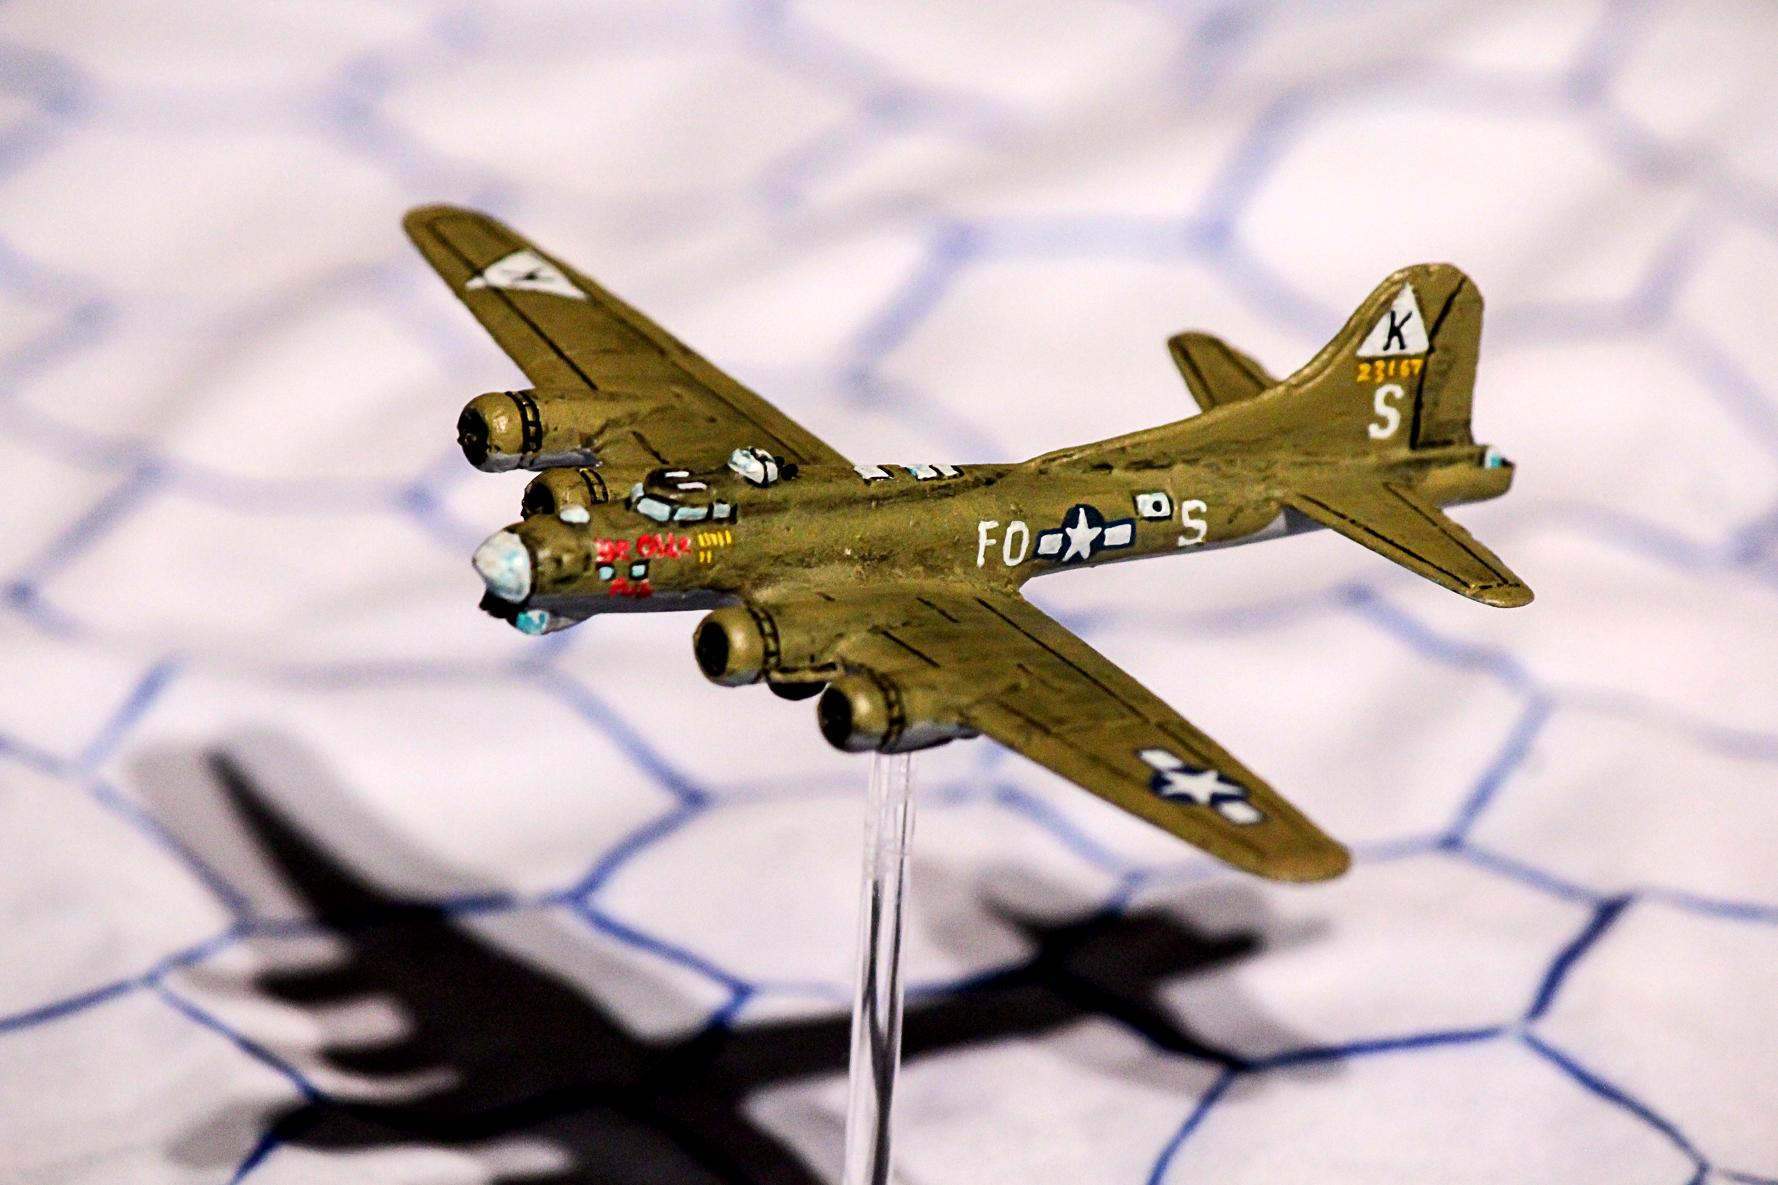 1:300, 6mm, Airborne, Aircraft, Airplane, America, Aviation, B-17, Bomber, Check Your 6!, Fliers, Flying Fortress, Heavy Bomber, Historical, Usaaf, World War 2